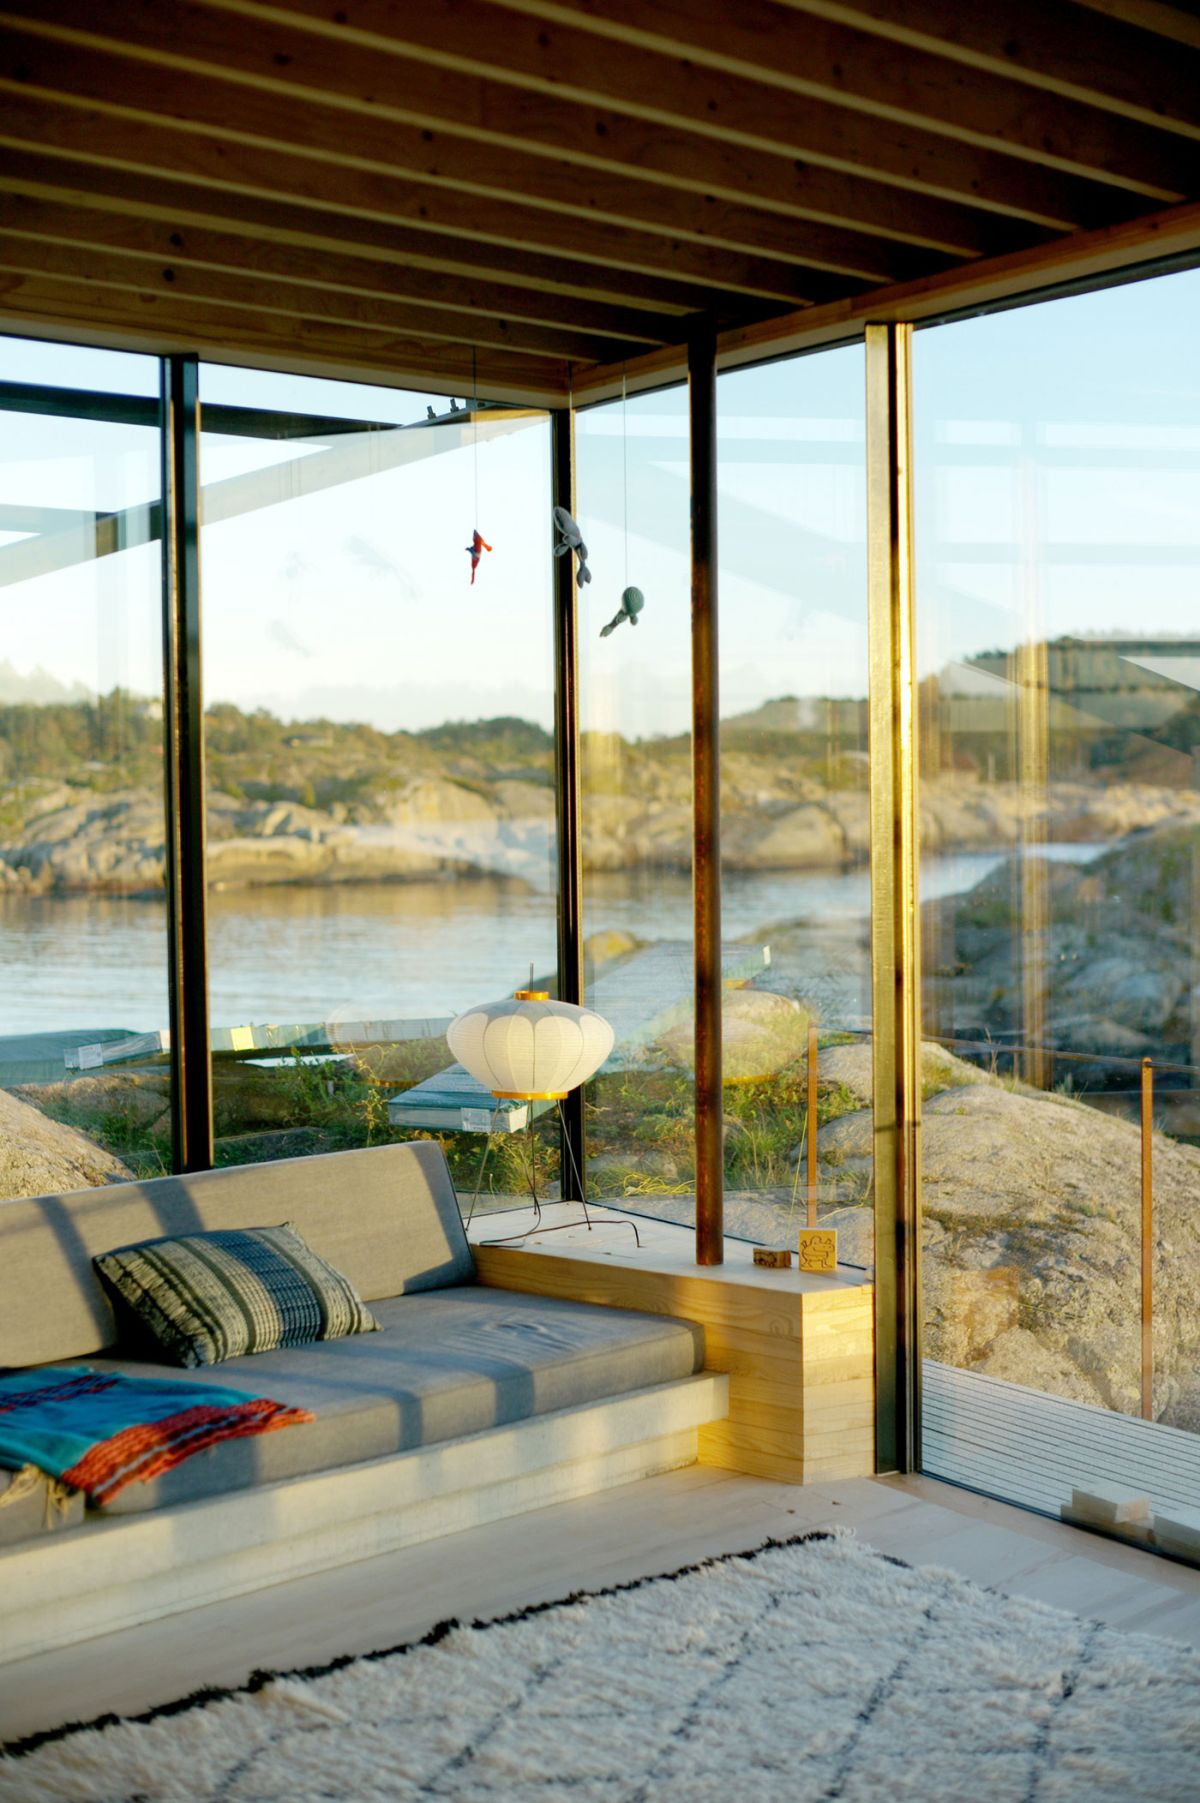 Lille Arøya holiday home living space